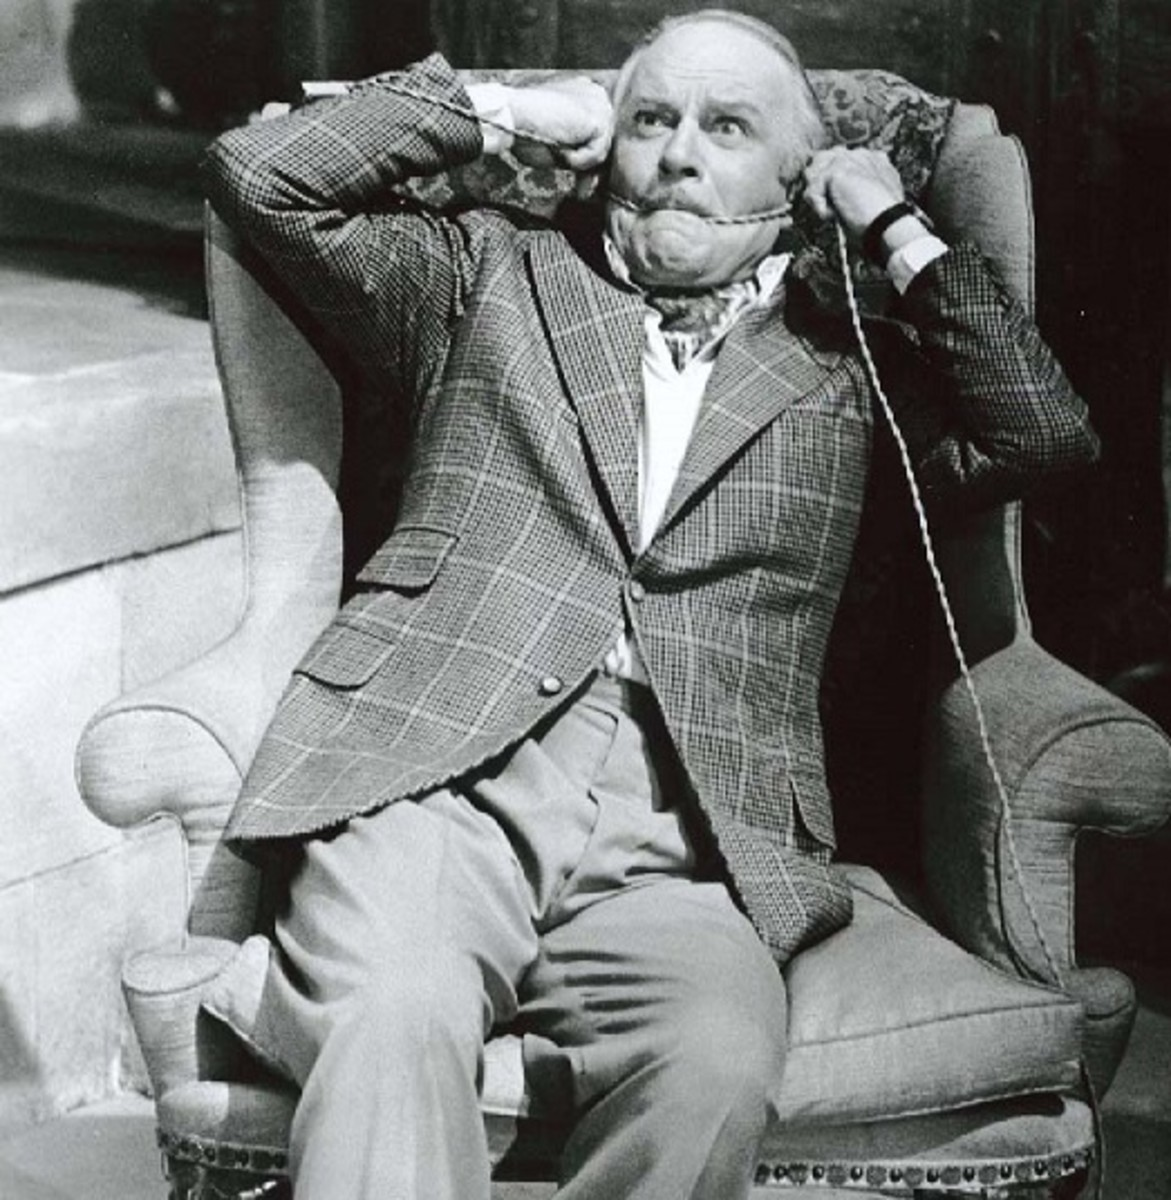 Laurence Olivier in Sleuth 1972.